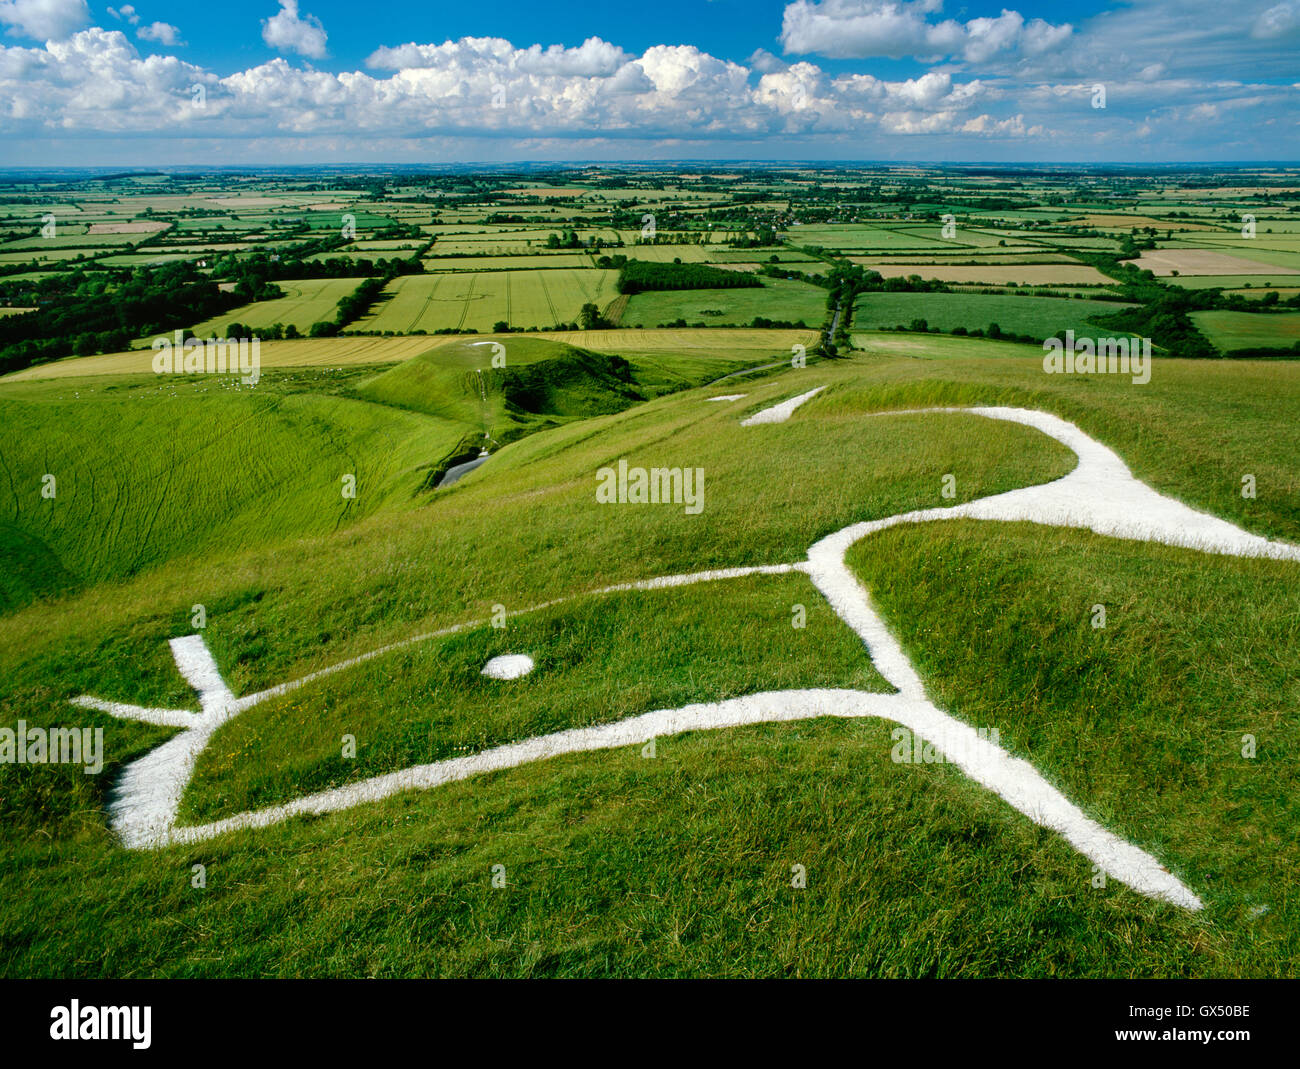 Head & eye of dragon-like Uffington White Horse chalk figure carved on the hillside above the flat-topped mound - Stock Image